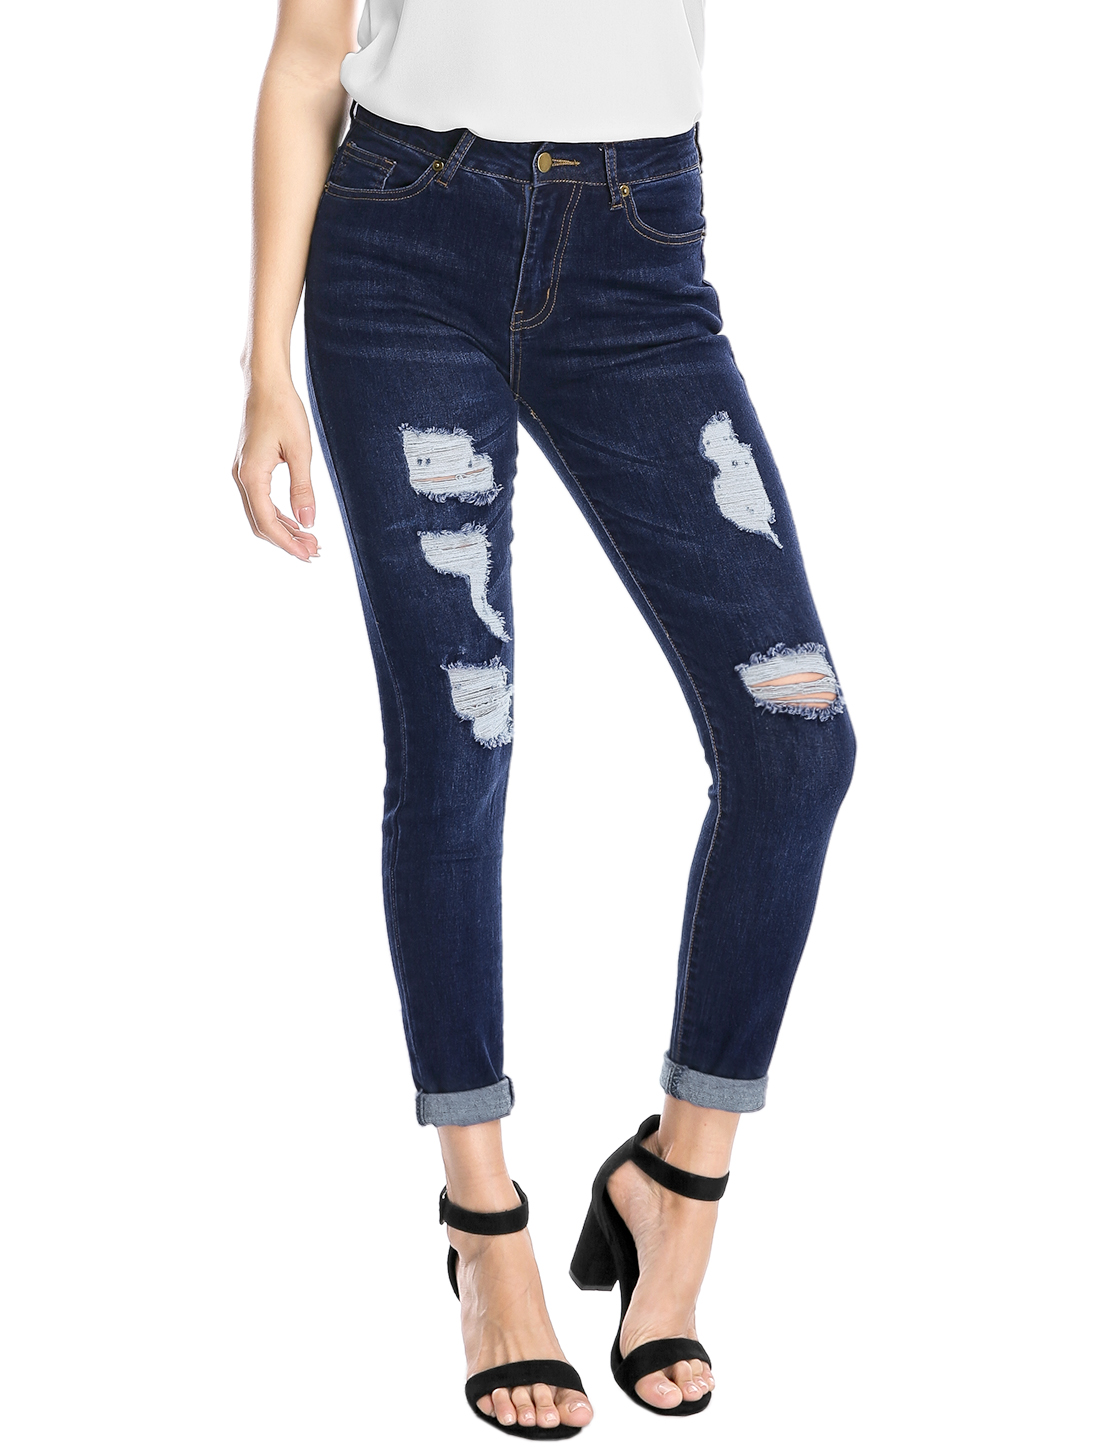 Women Distressed Design Mid Rise Washed Denim Skinny Jeans Blue L